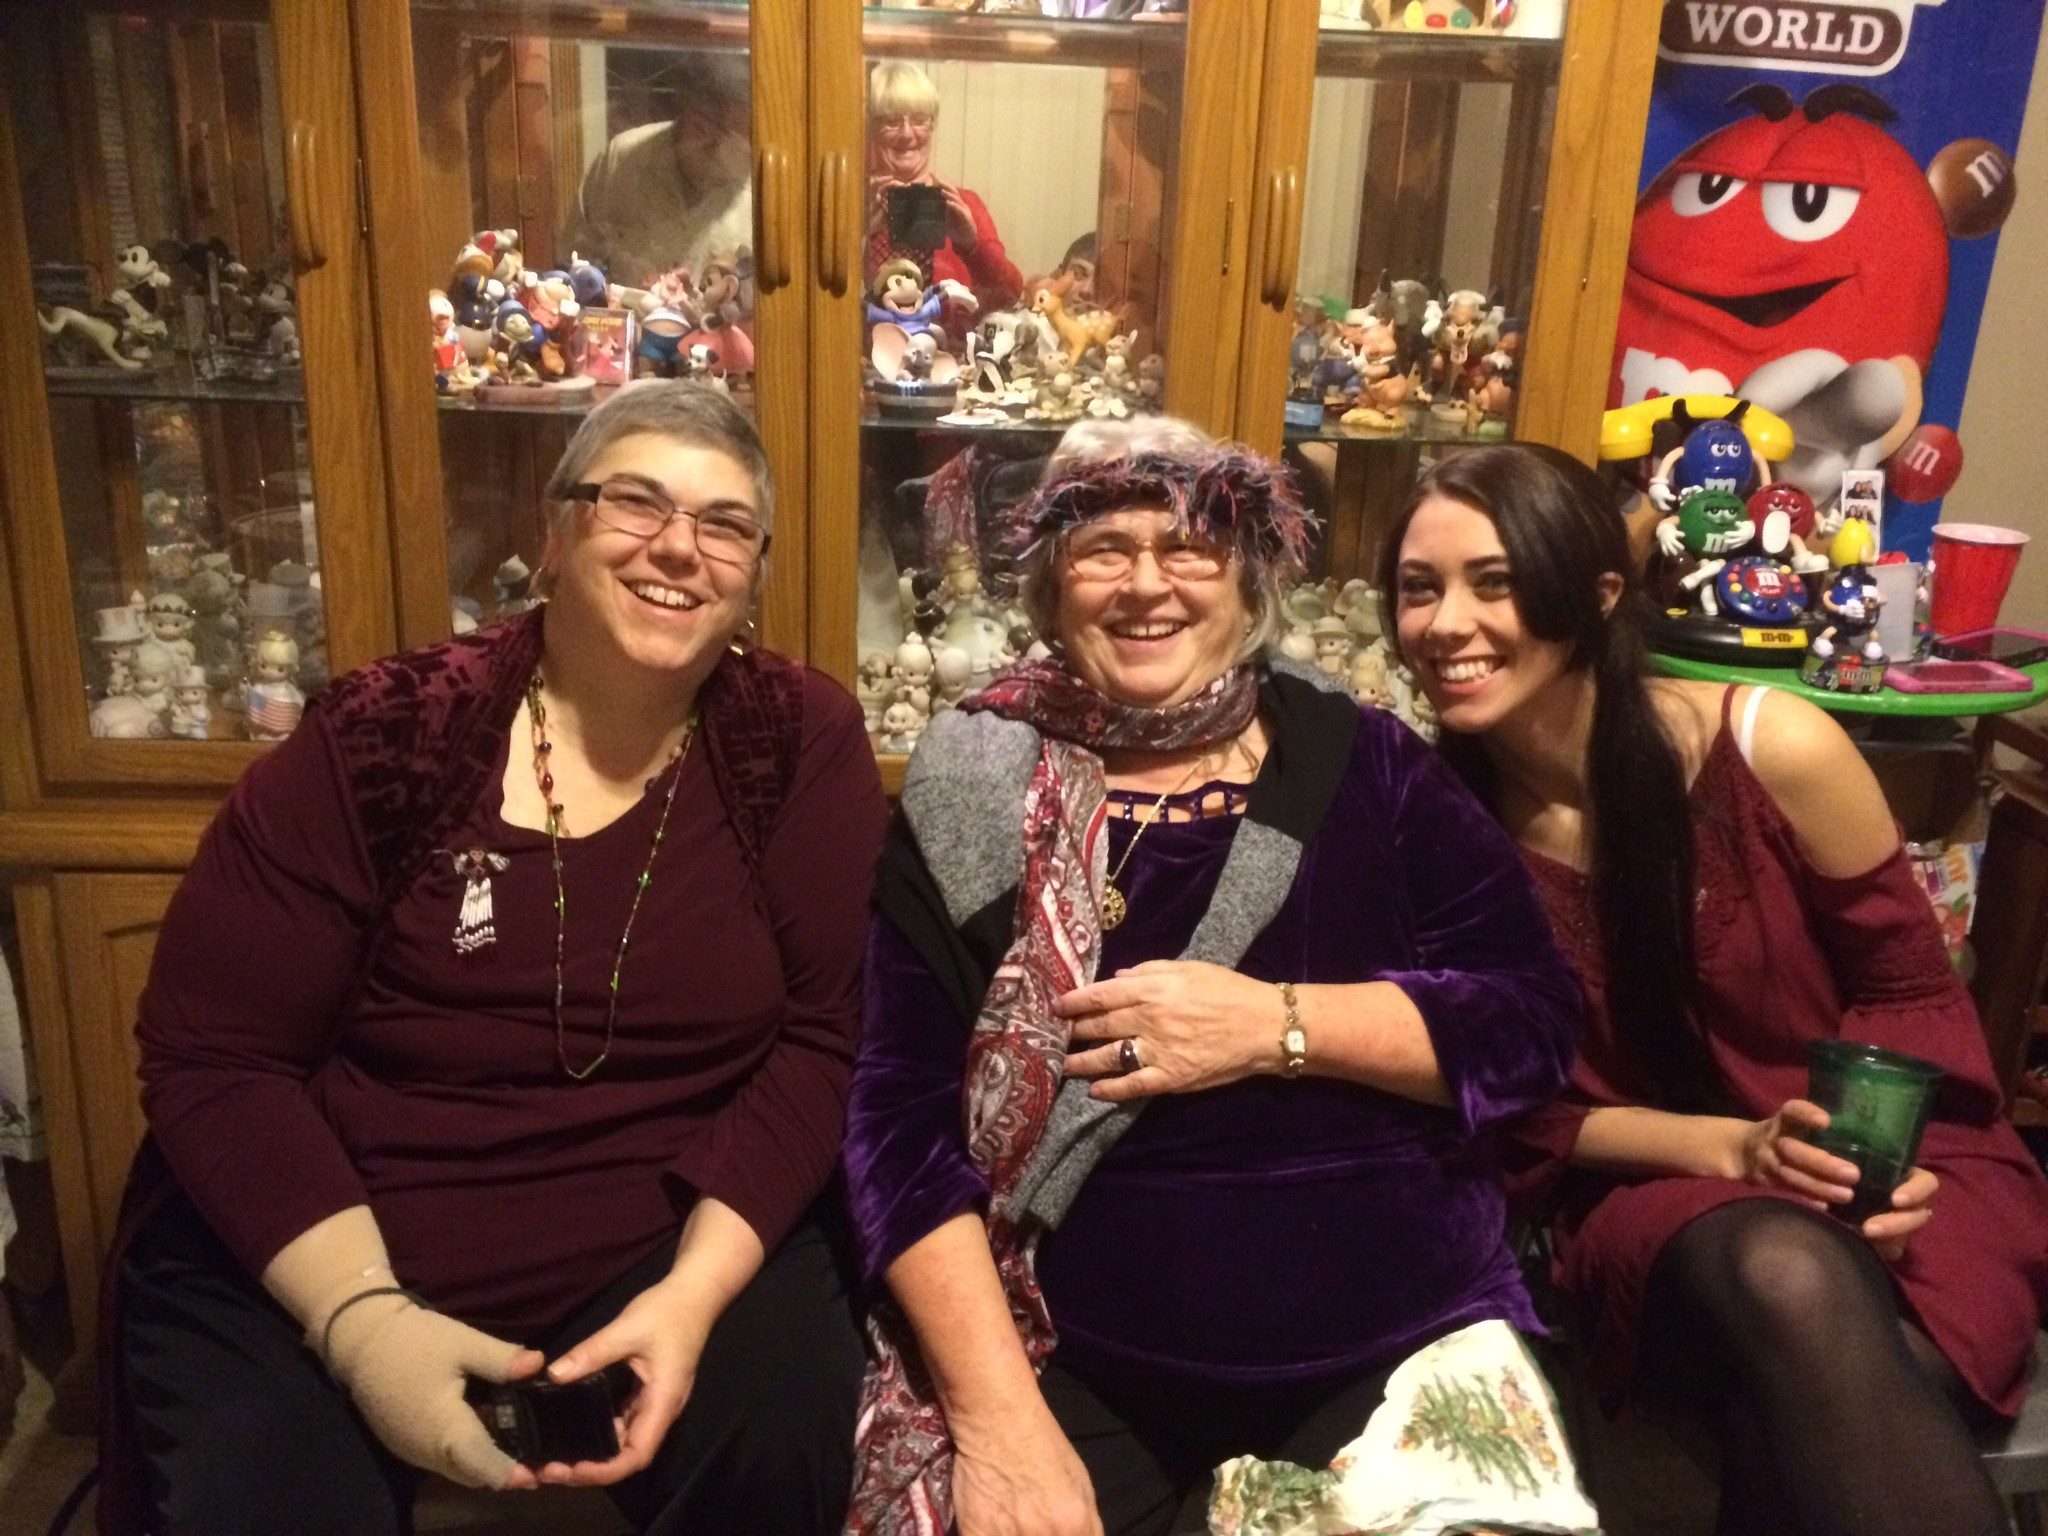 Toni Wilson, left, enjoyed one final Christmas Eve with her mother, Evelyn Henn, and daughter, Elizabeth, before succumbing to cancer on Feb. 26.